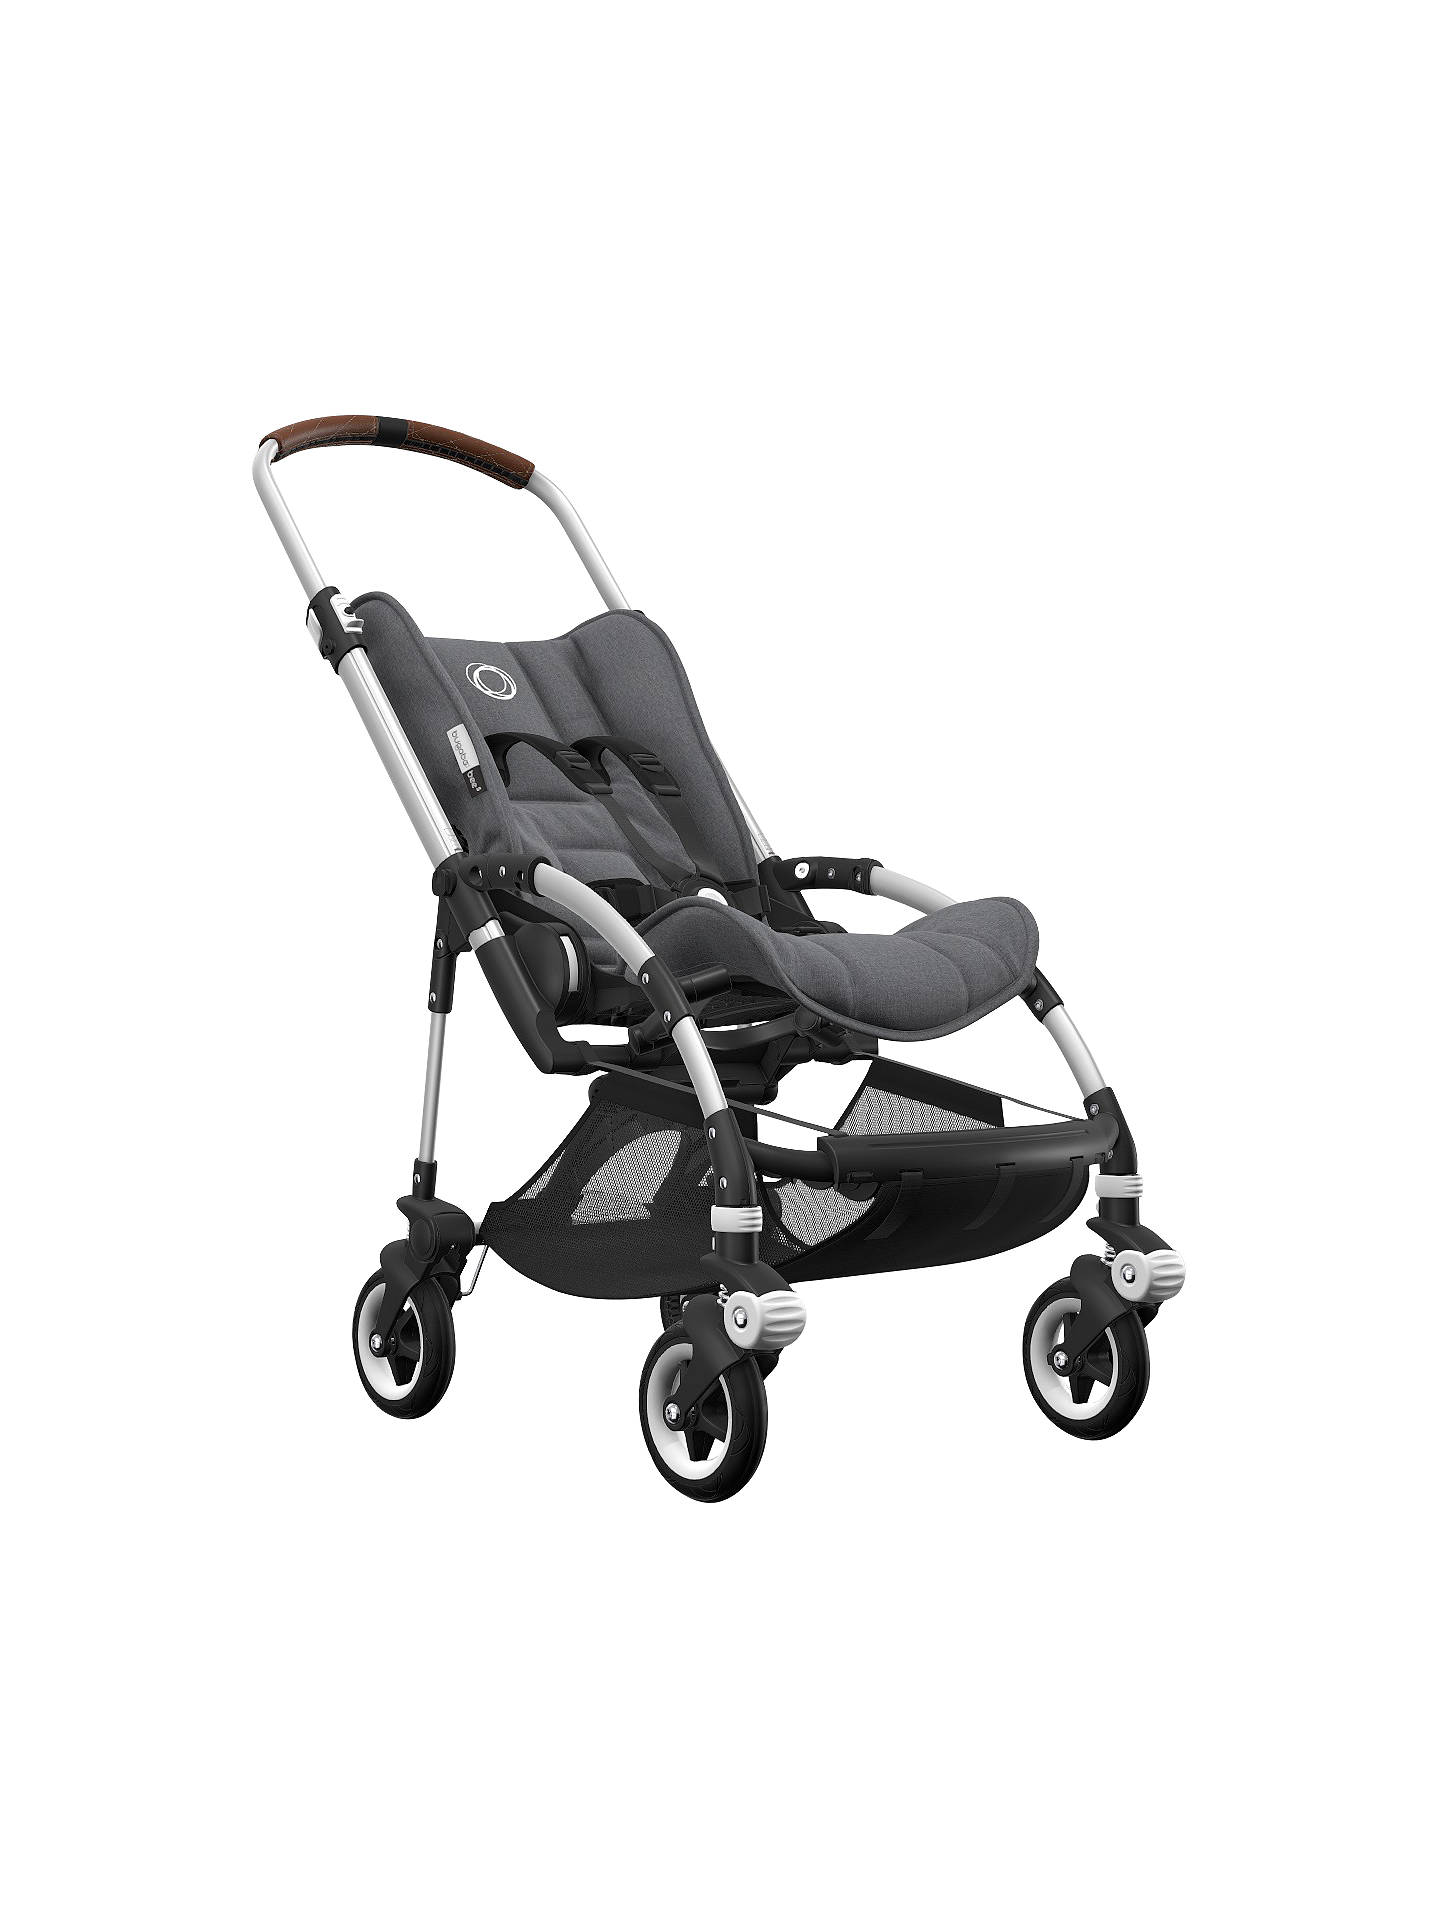 BuyBugaboo Bee5 Complete Pushchair, Aluminium Base with Cognac Handles and Grey Melange Fabric Online at johnlewis.com